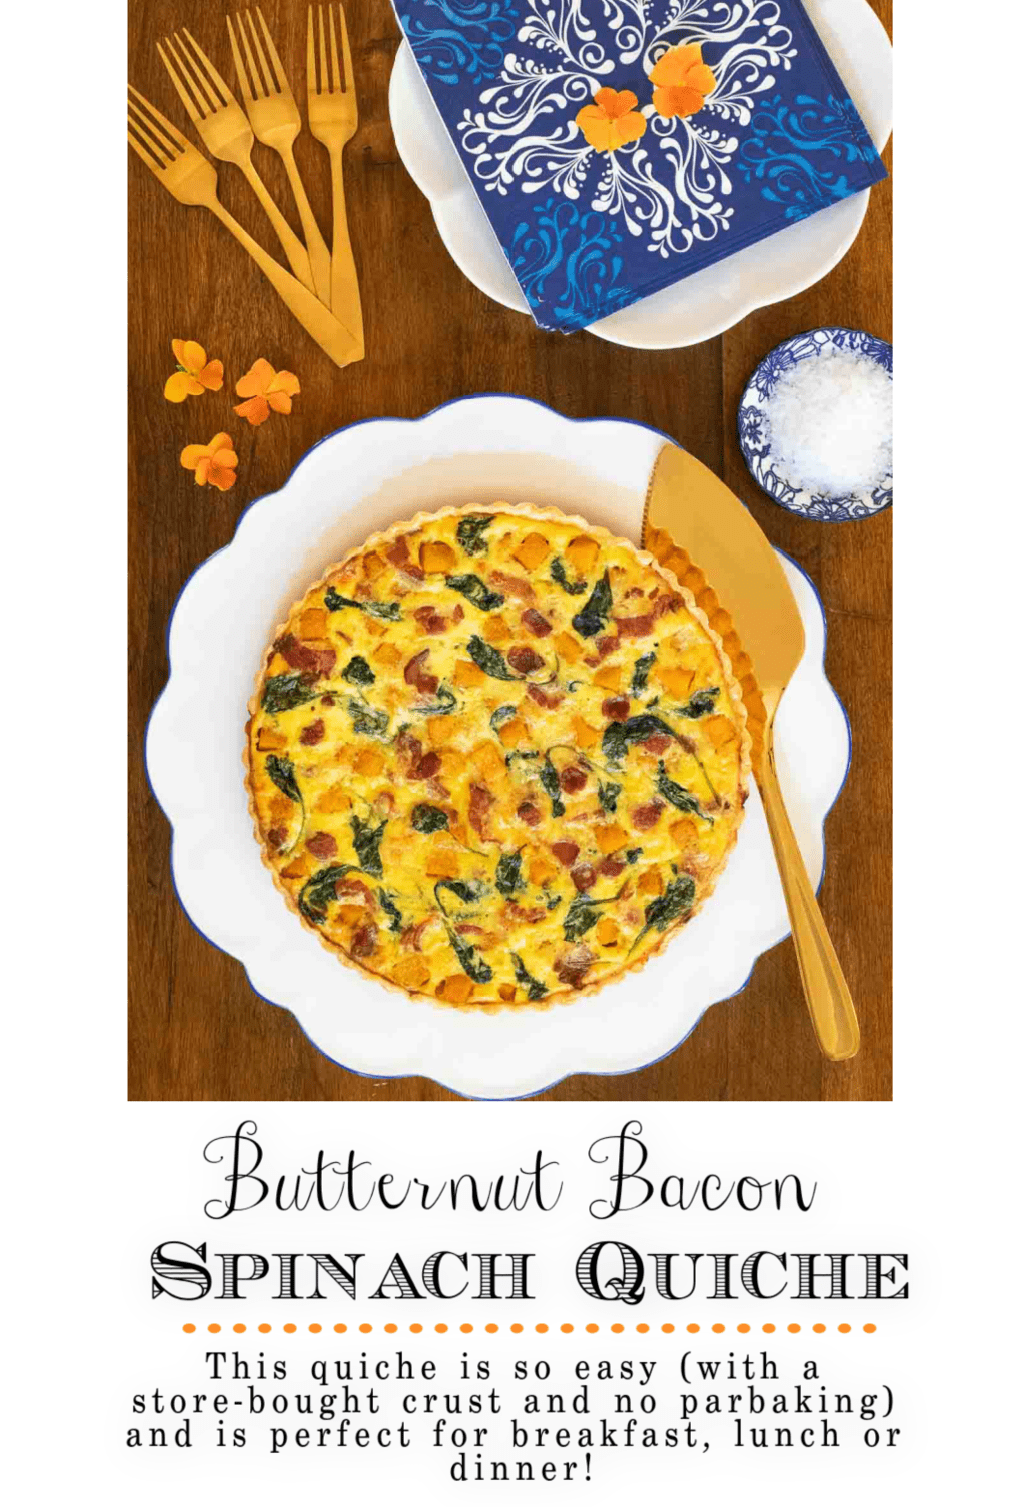 Butternut Bacon Spinach Quiche